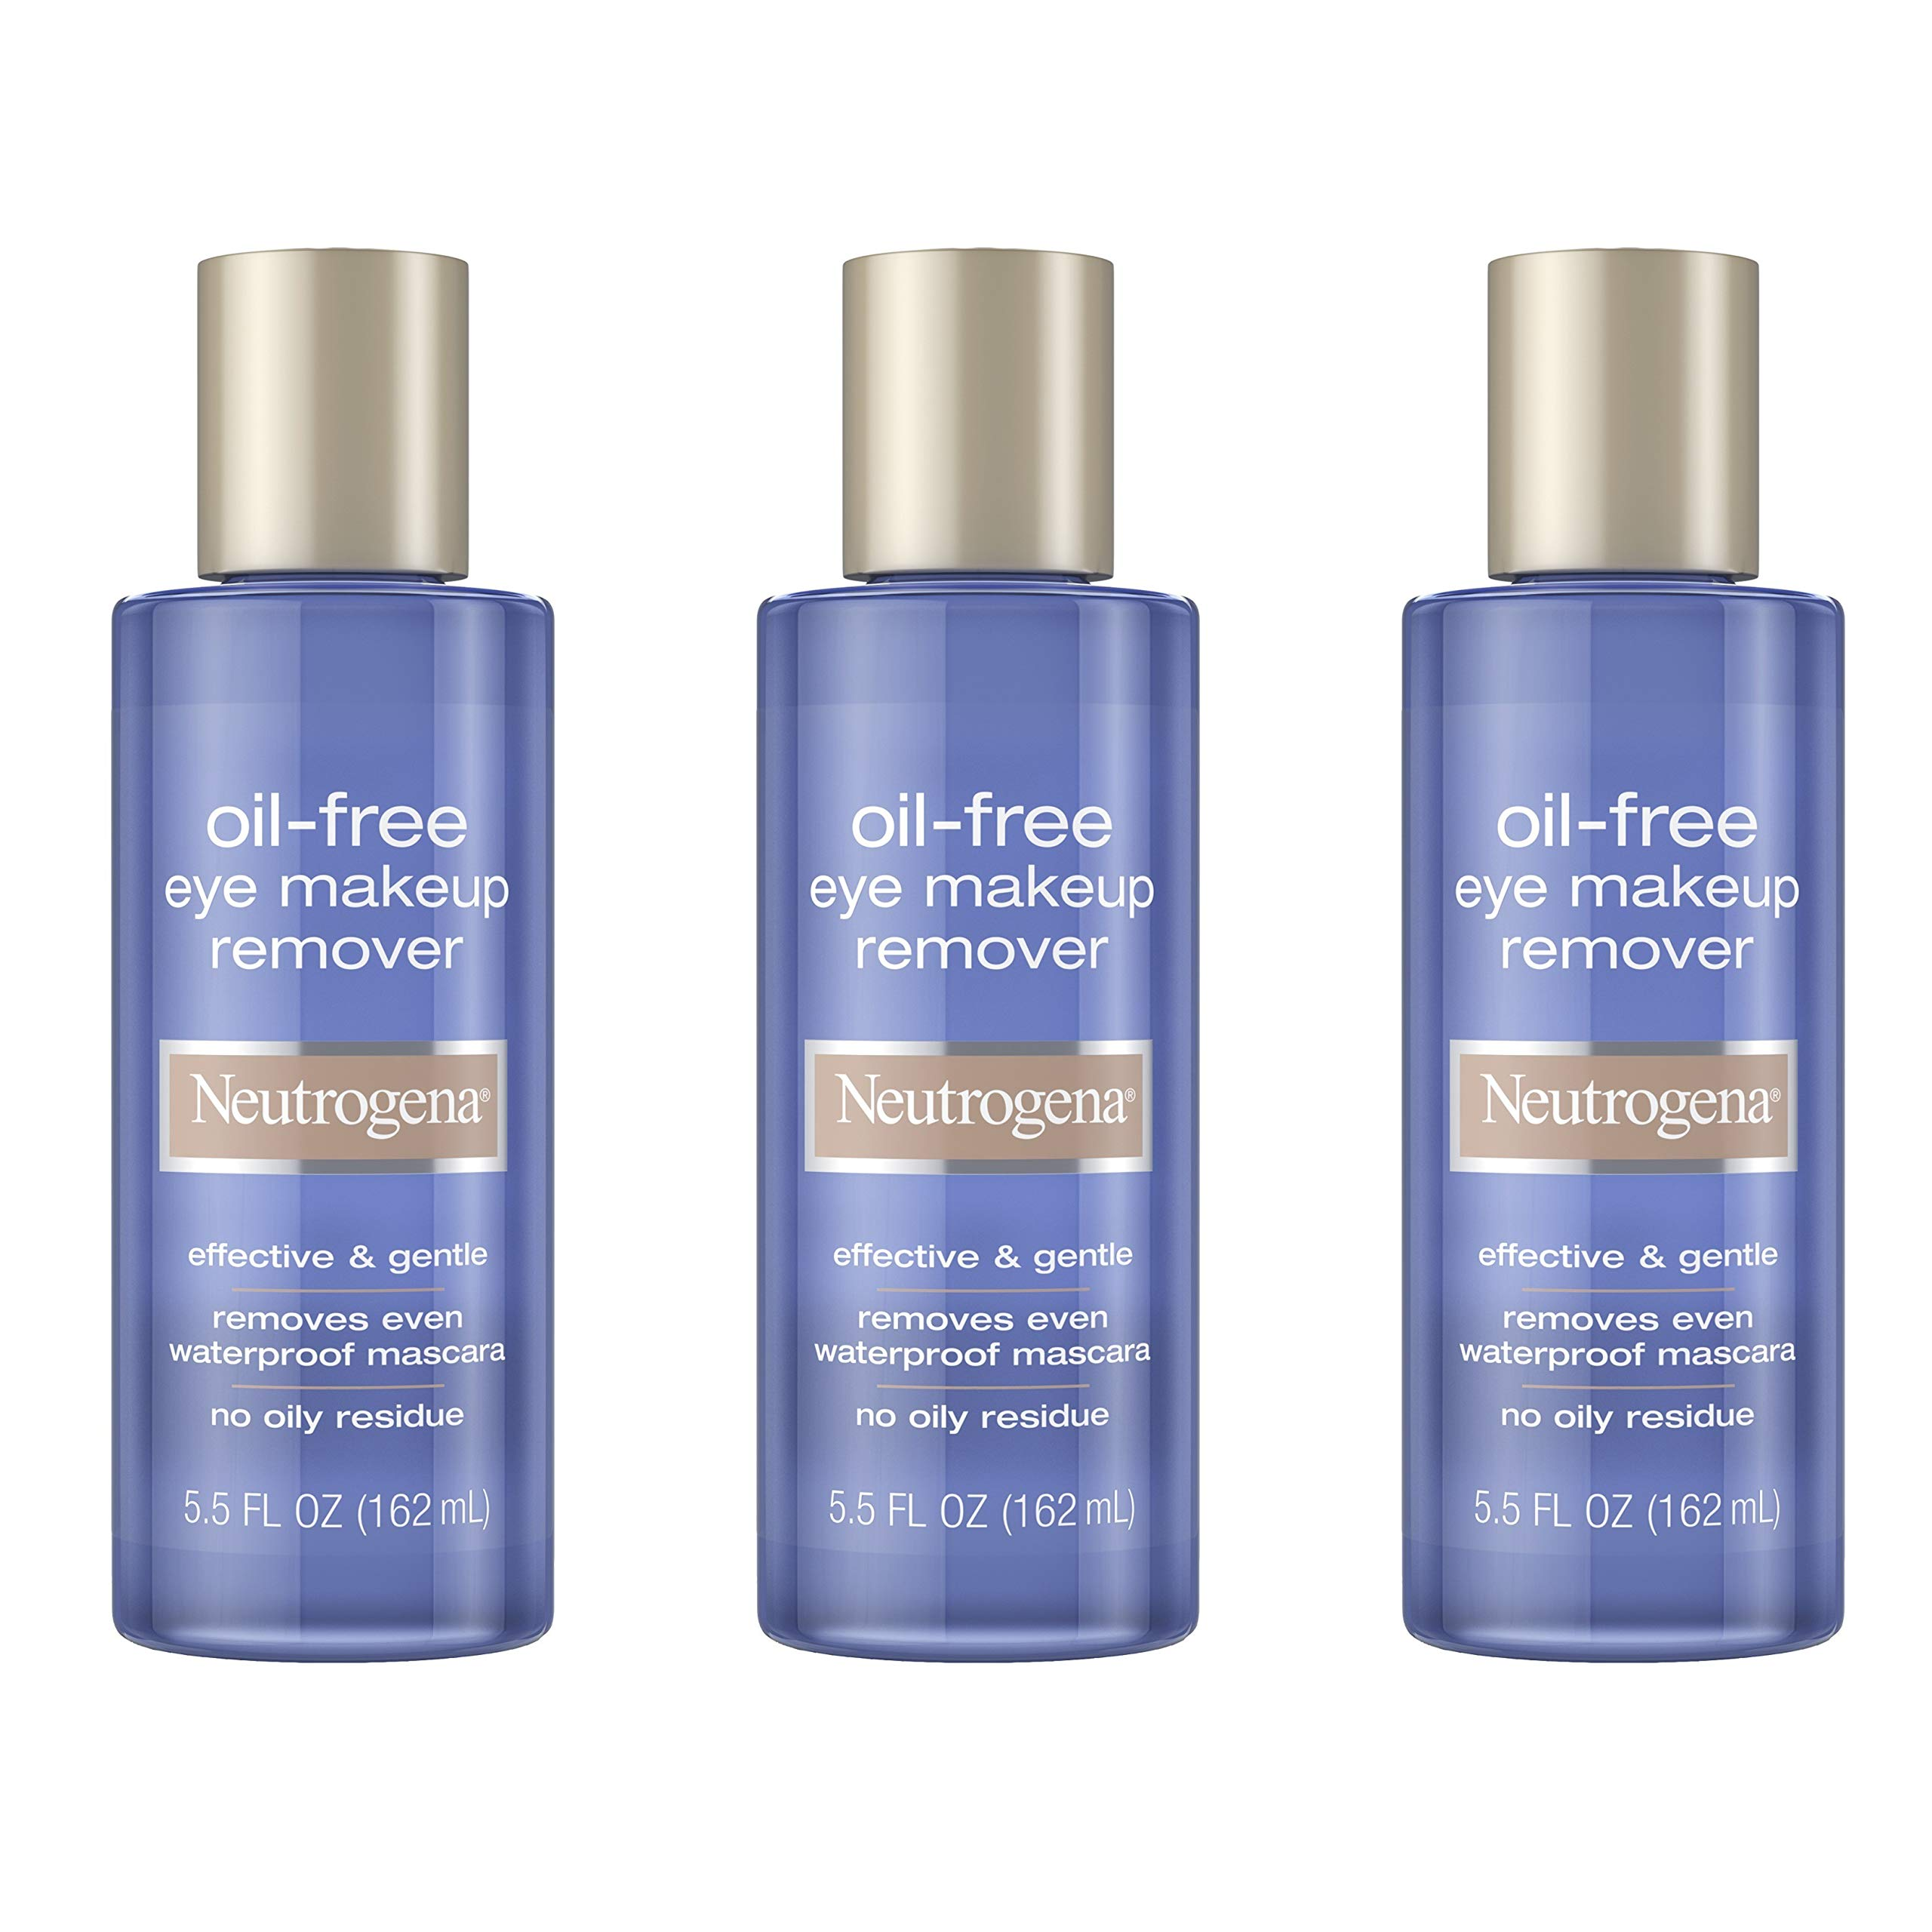 Neutrogena Gentle Oil-Free Eye Makeup Remover & Cleanser for Sensitive Eyes, Non-Greasy Makeup Remover, Removes Waterproof Mascara, Dermatologist & Ophthalmologist Tested, 3 x 5.5 fl. oz